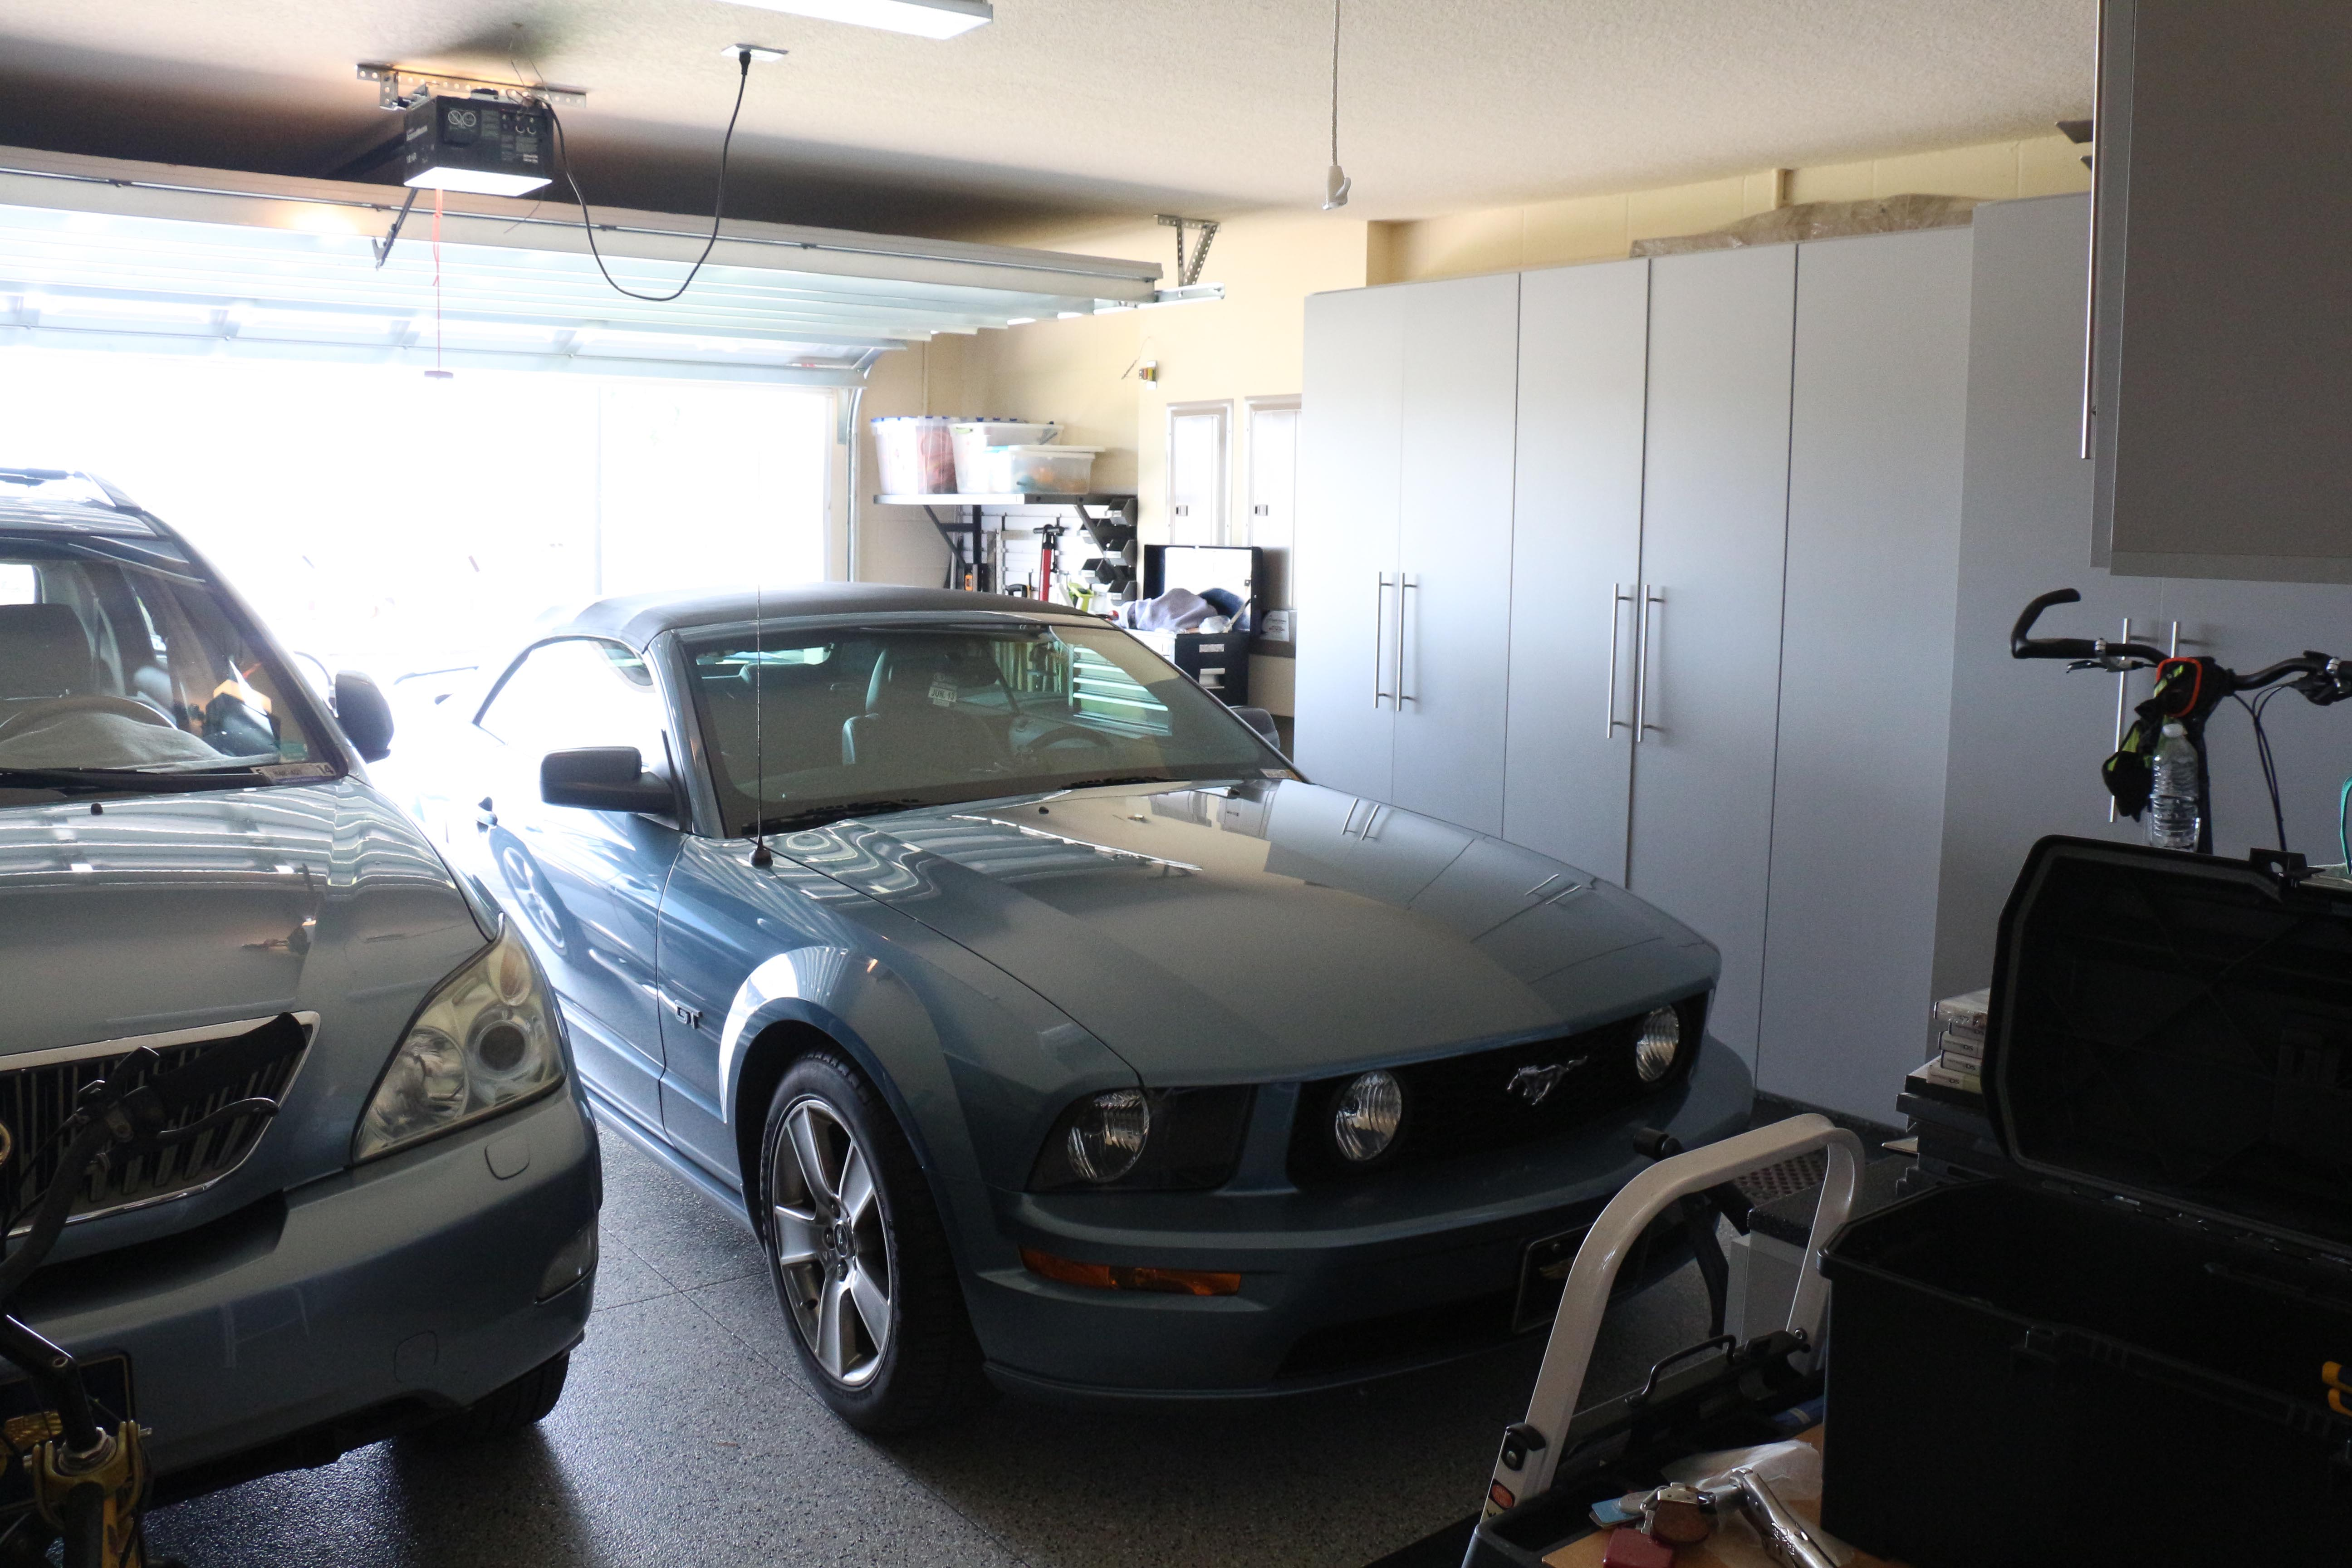 Garage Inside With Car